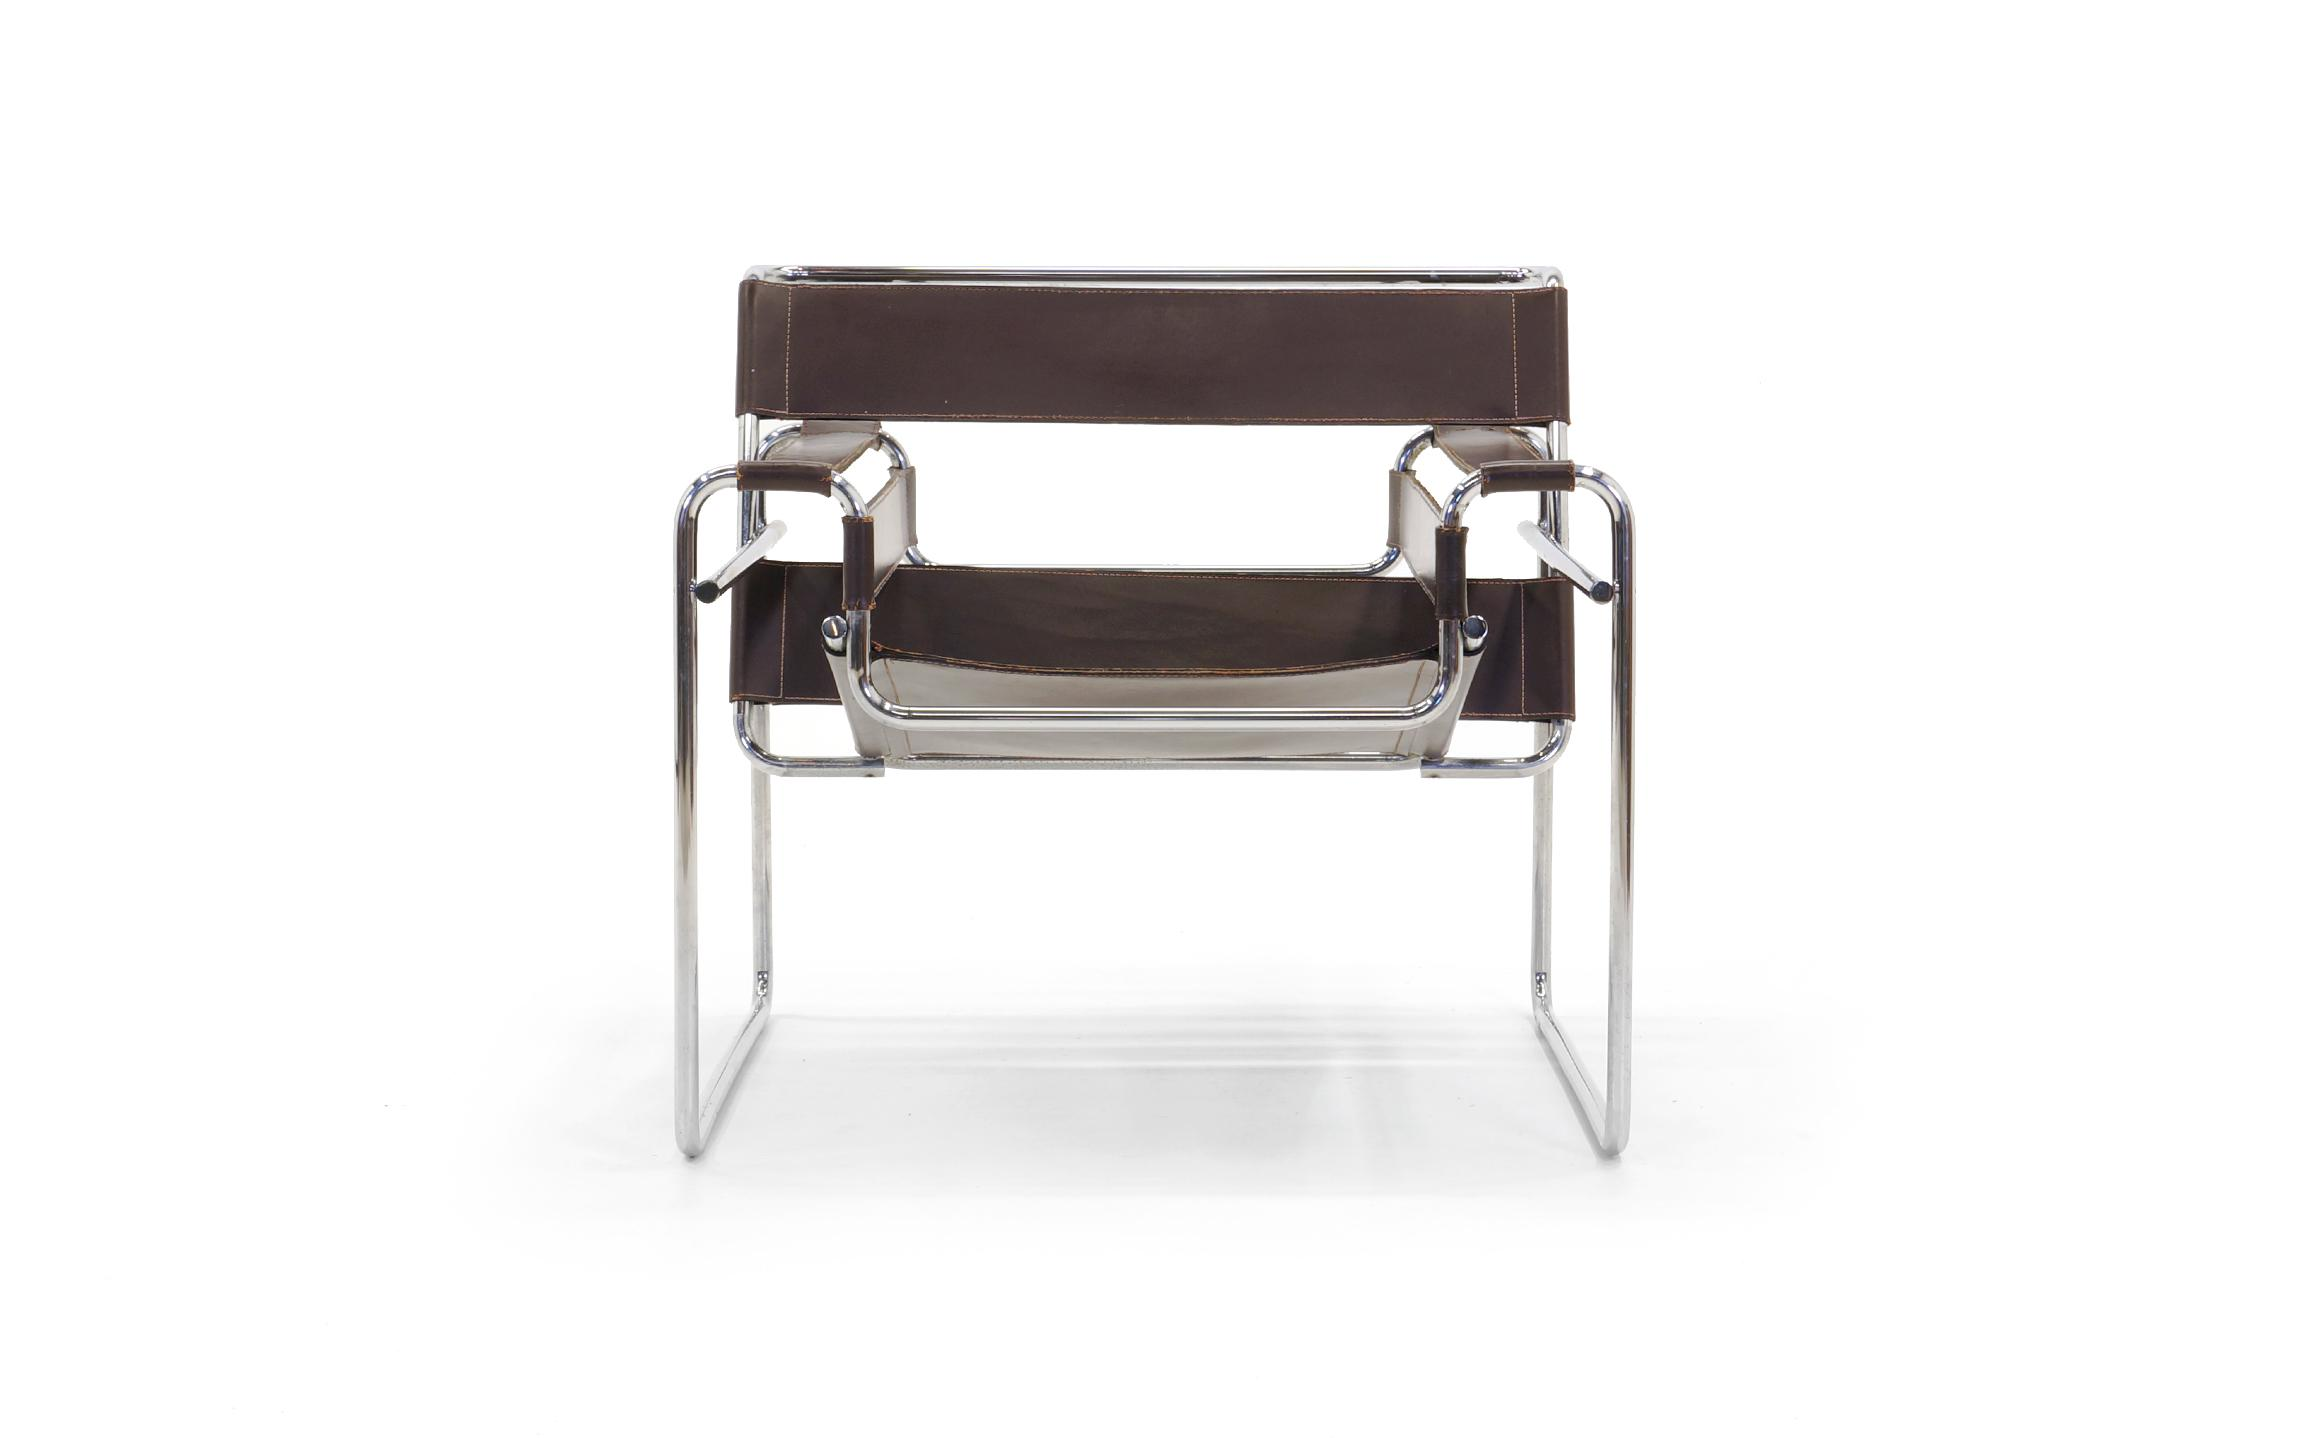 Captivating Early Original Knoll Gavina Wassily Chair By Marcel Breuer In Brown Leather    Image 2 Of